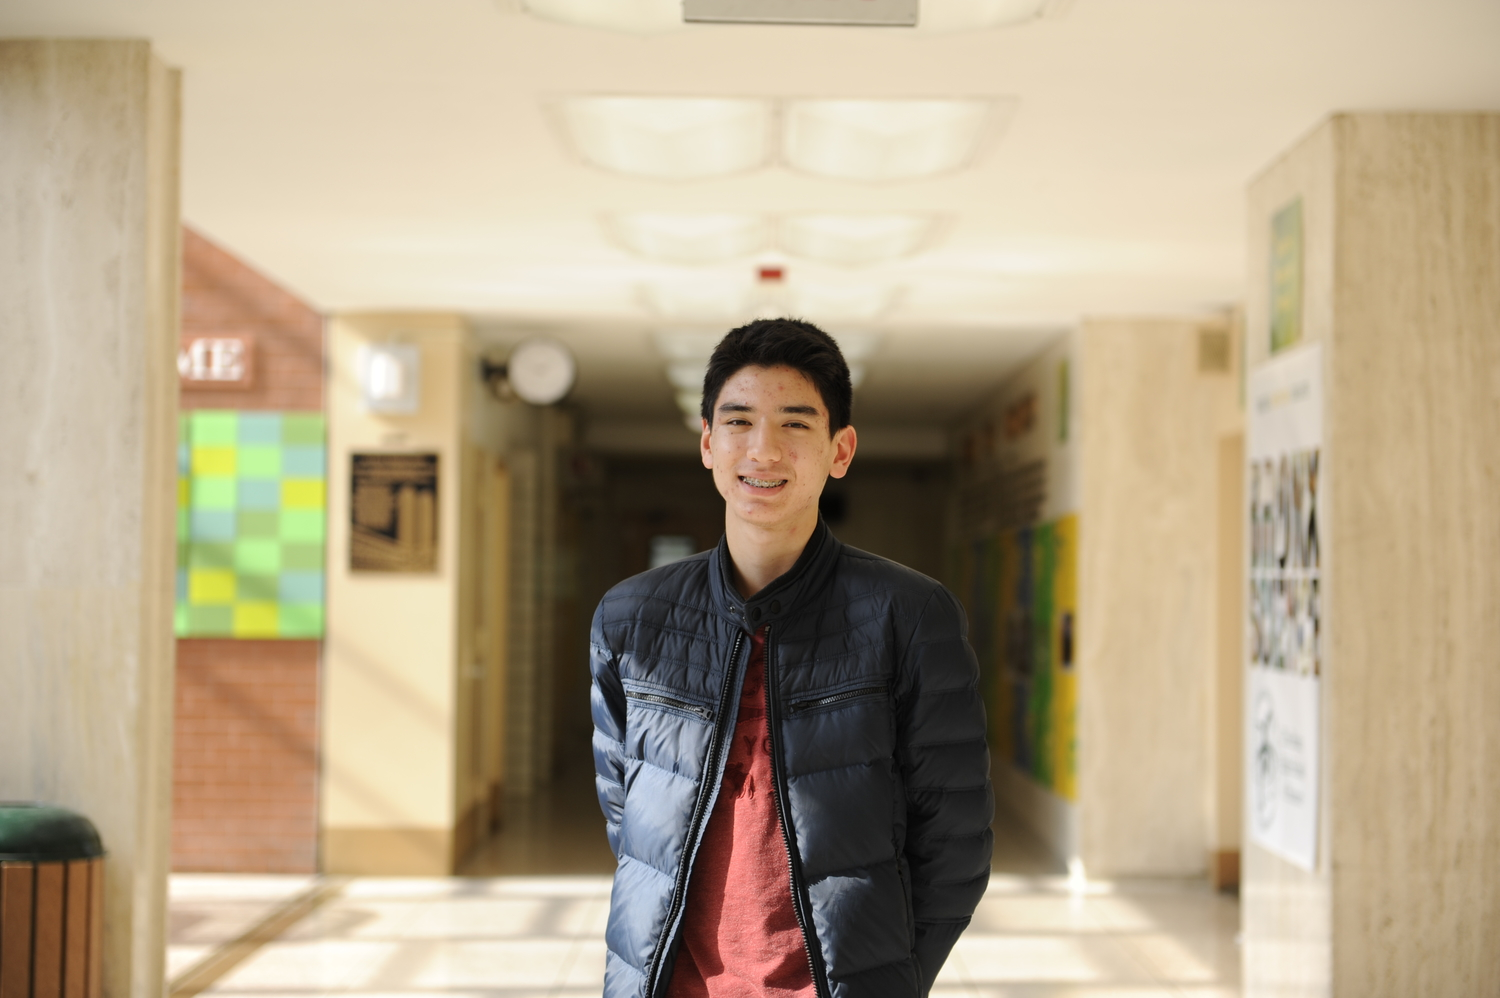 """""""The very system designed to promote diversity among colleges pits minority against minority,"""" Alex Tembelis '21 said. """"We can do better."""""""